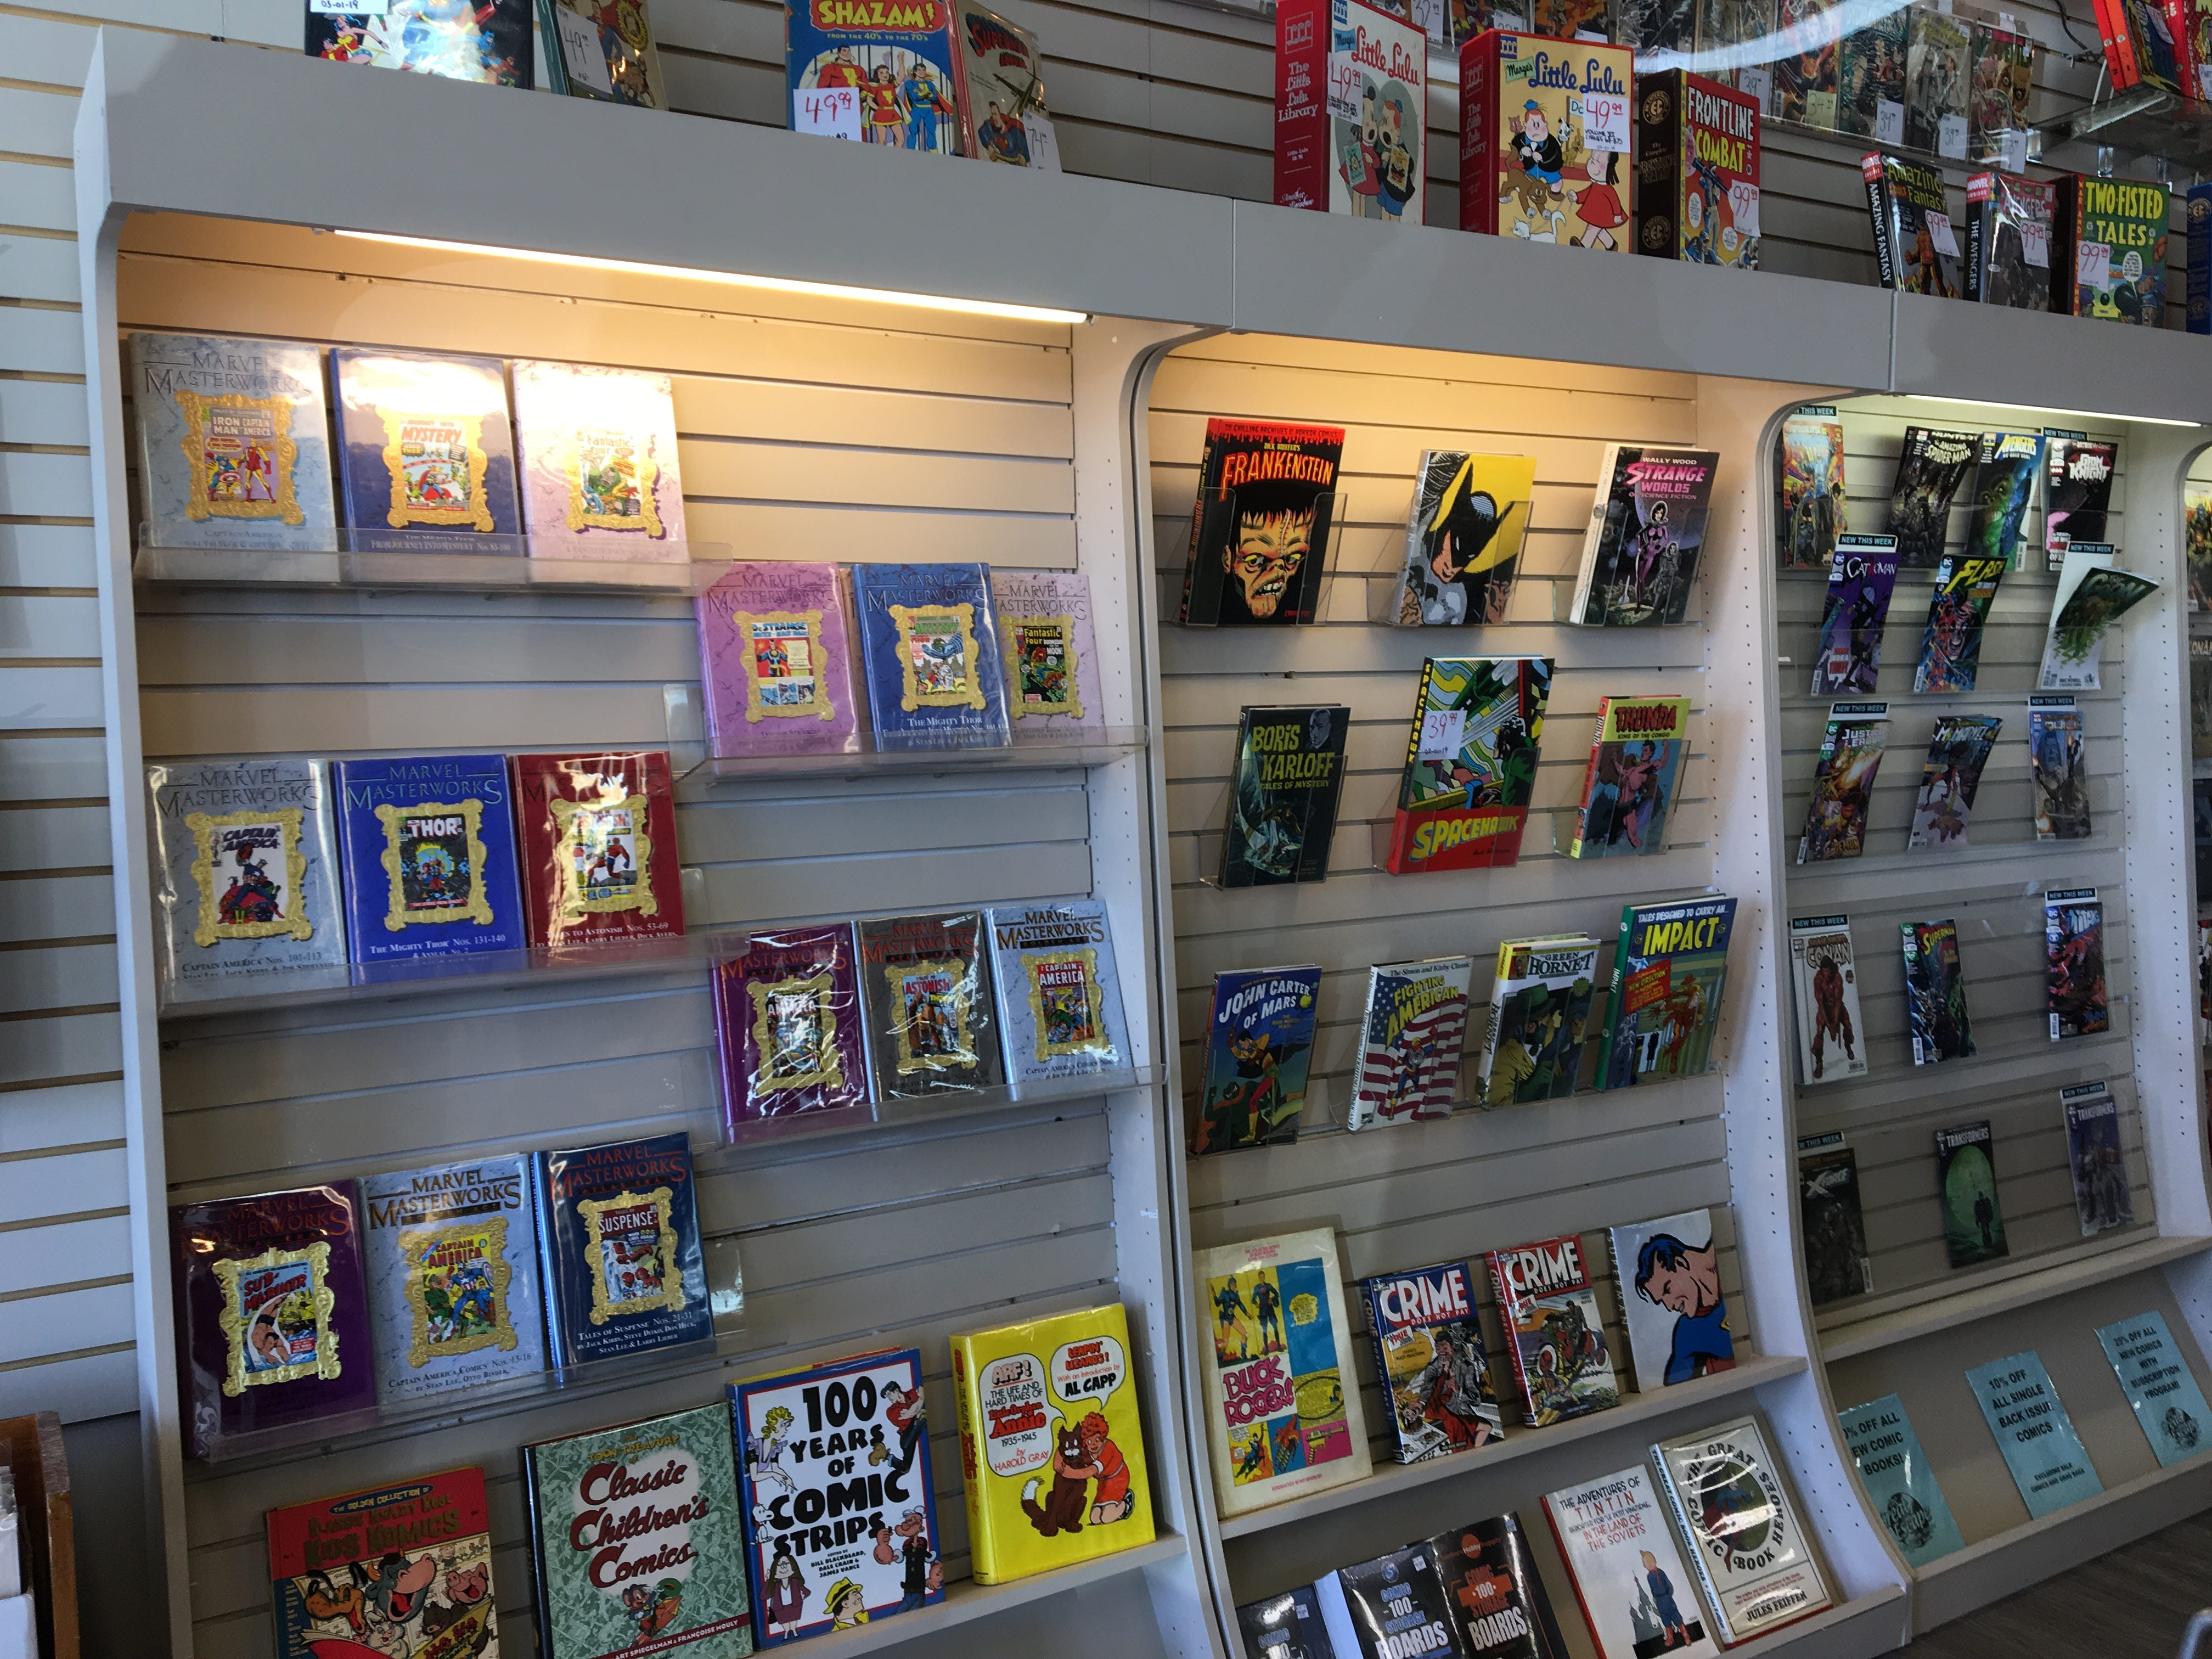 The Great Escape, now located at 810 N.W. Broad St. in Murfreesboro, is a media store that buys and sells used, new, collectible and out-of-print vinyl records, DVDs, comic books, games, CDs and other items.